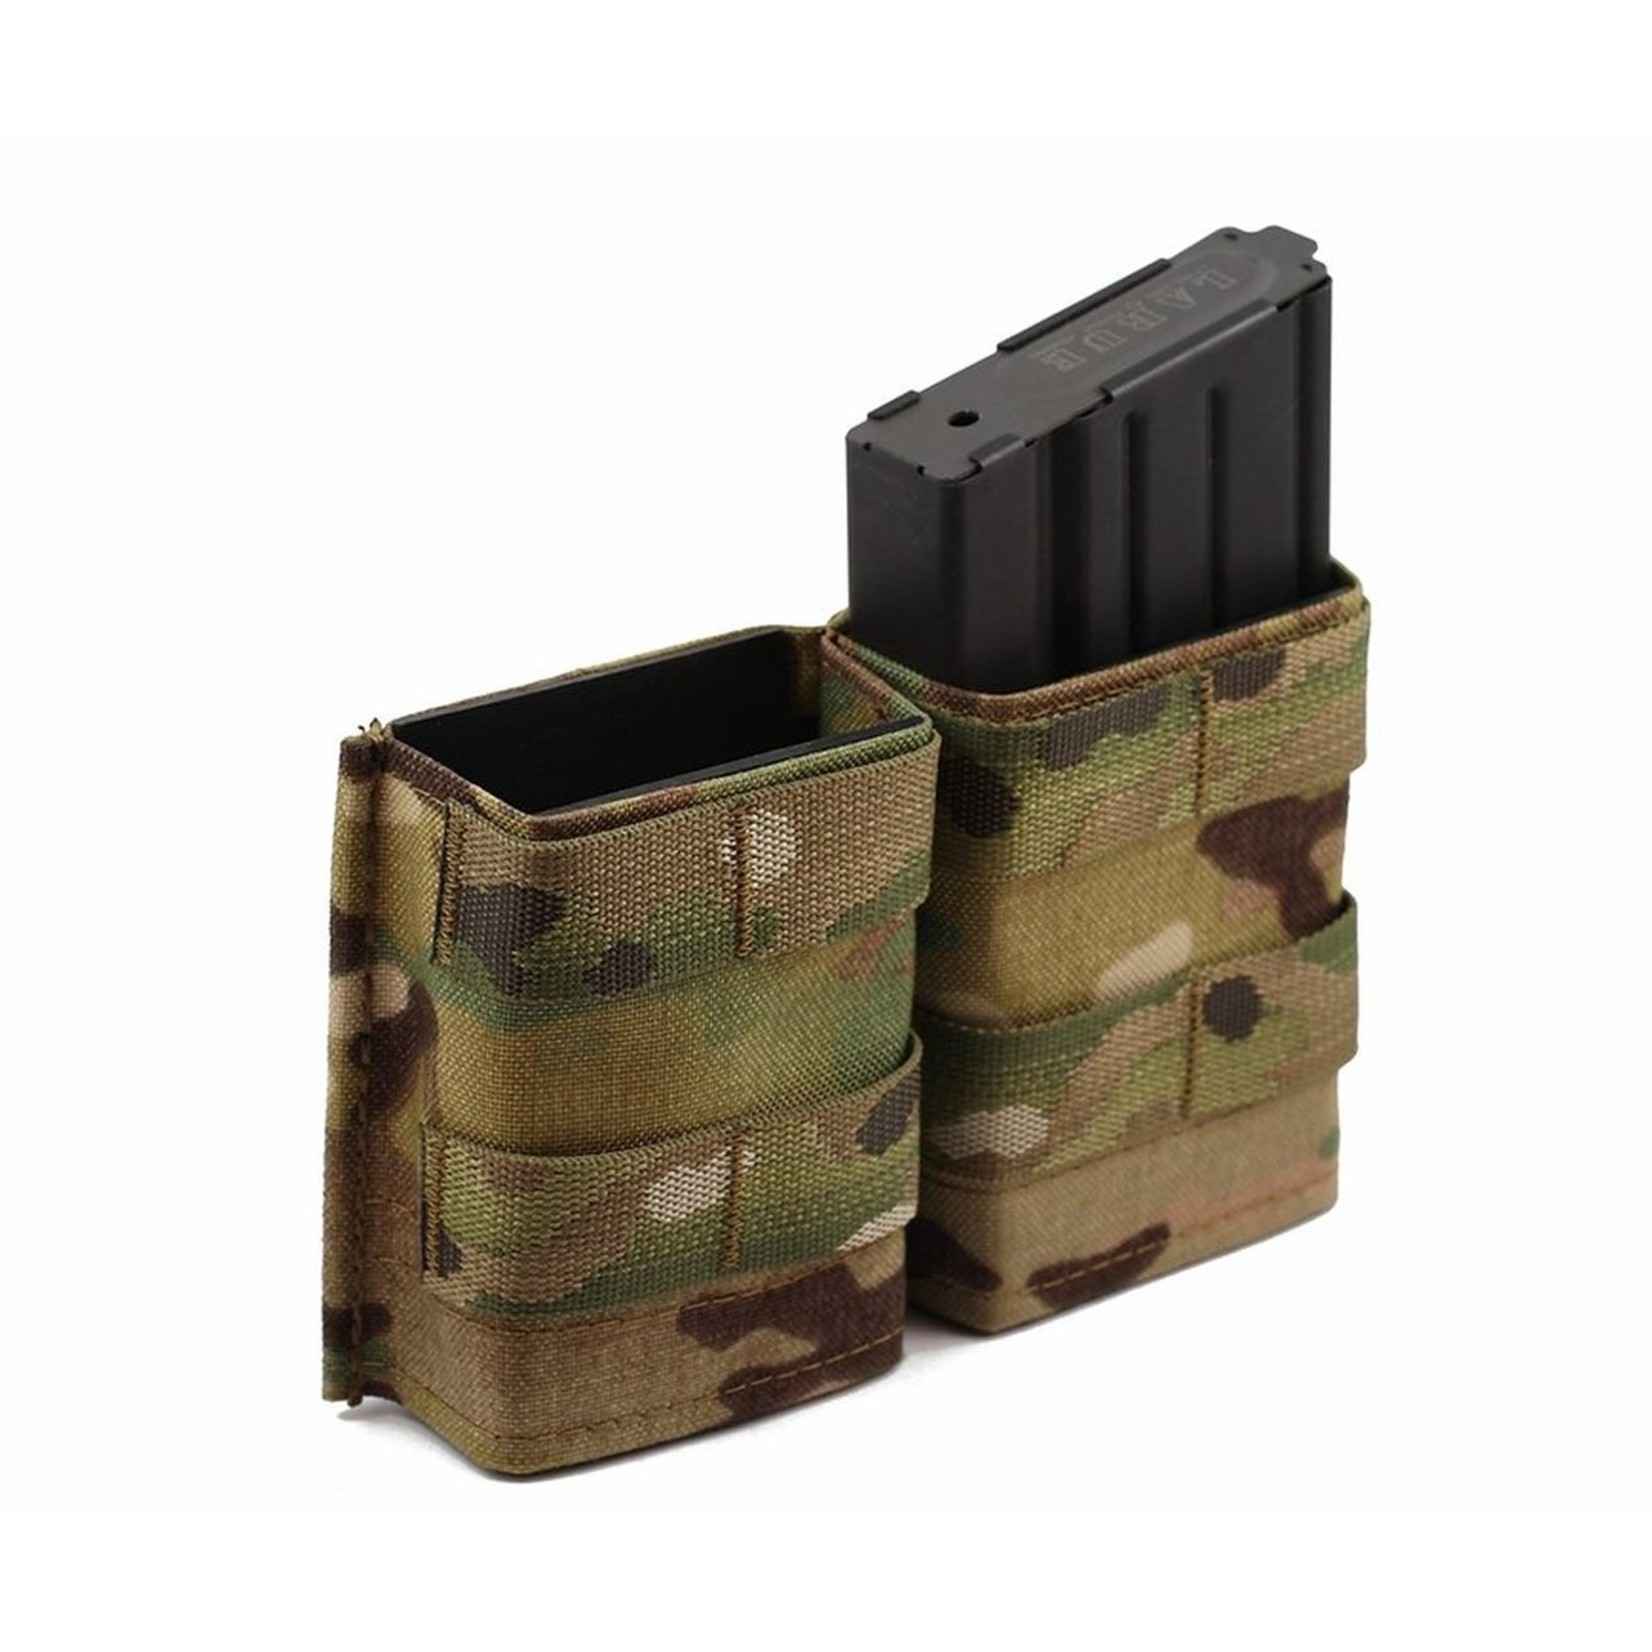 ESSTAC 7.62 DOUBLE  KYWI MIDLENGHT